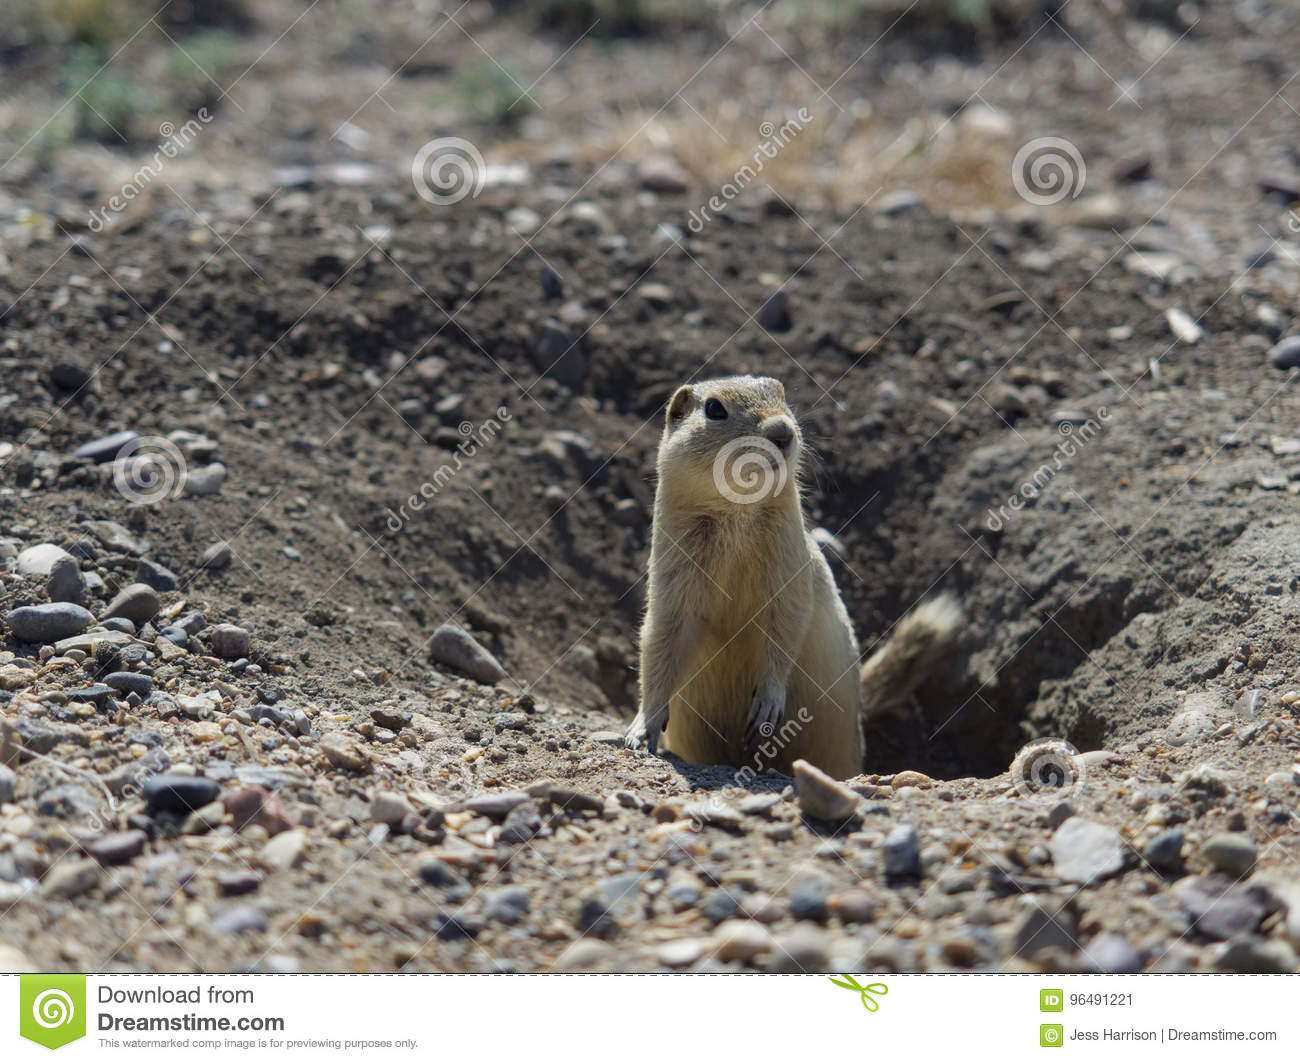 Prairie Dog Coming out of Underground Burrow in the Morning